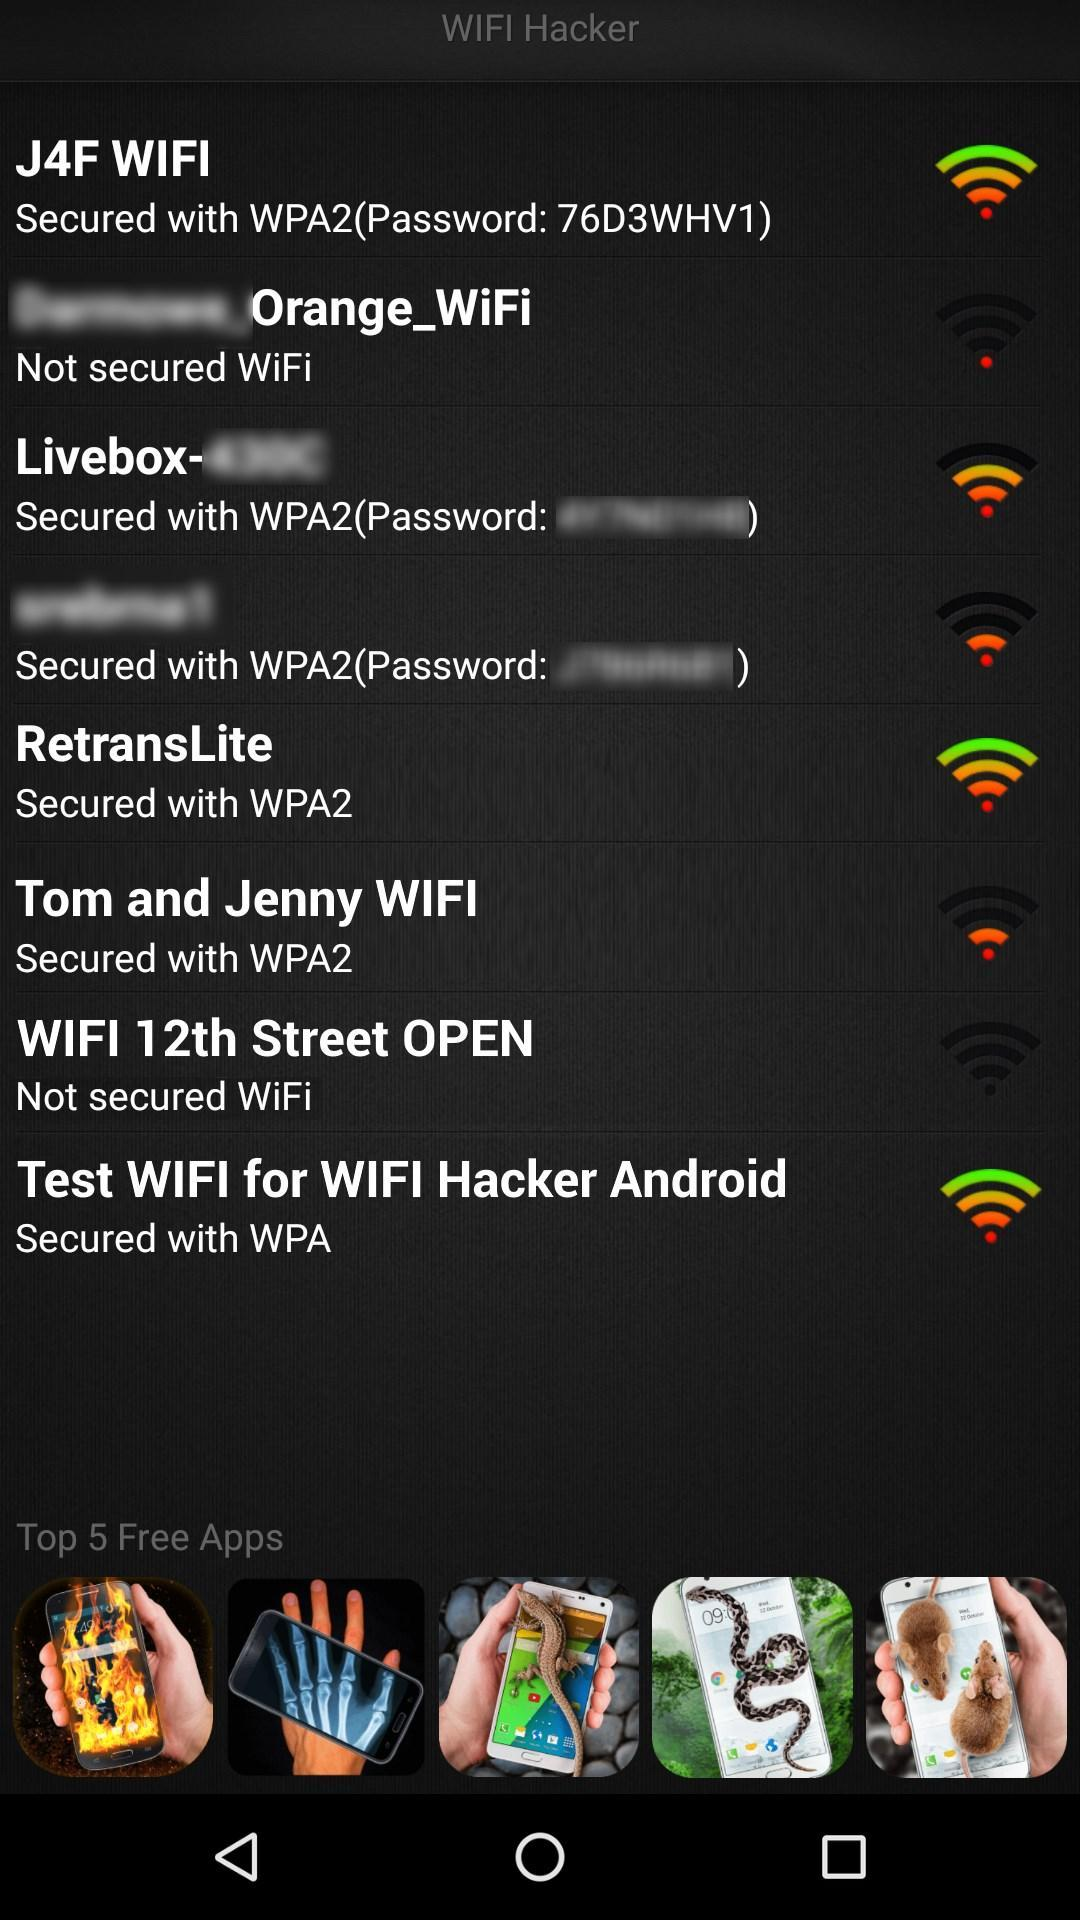 WIFI Hacker Professional (prank) for Android - APK Download